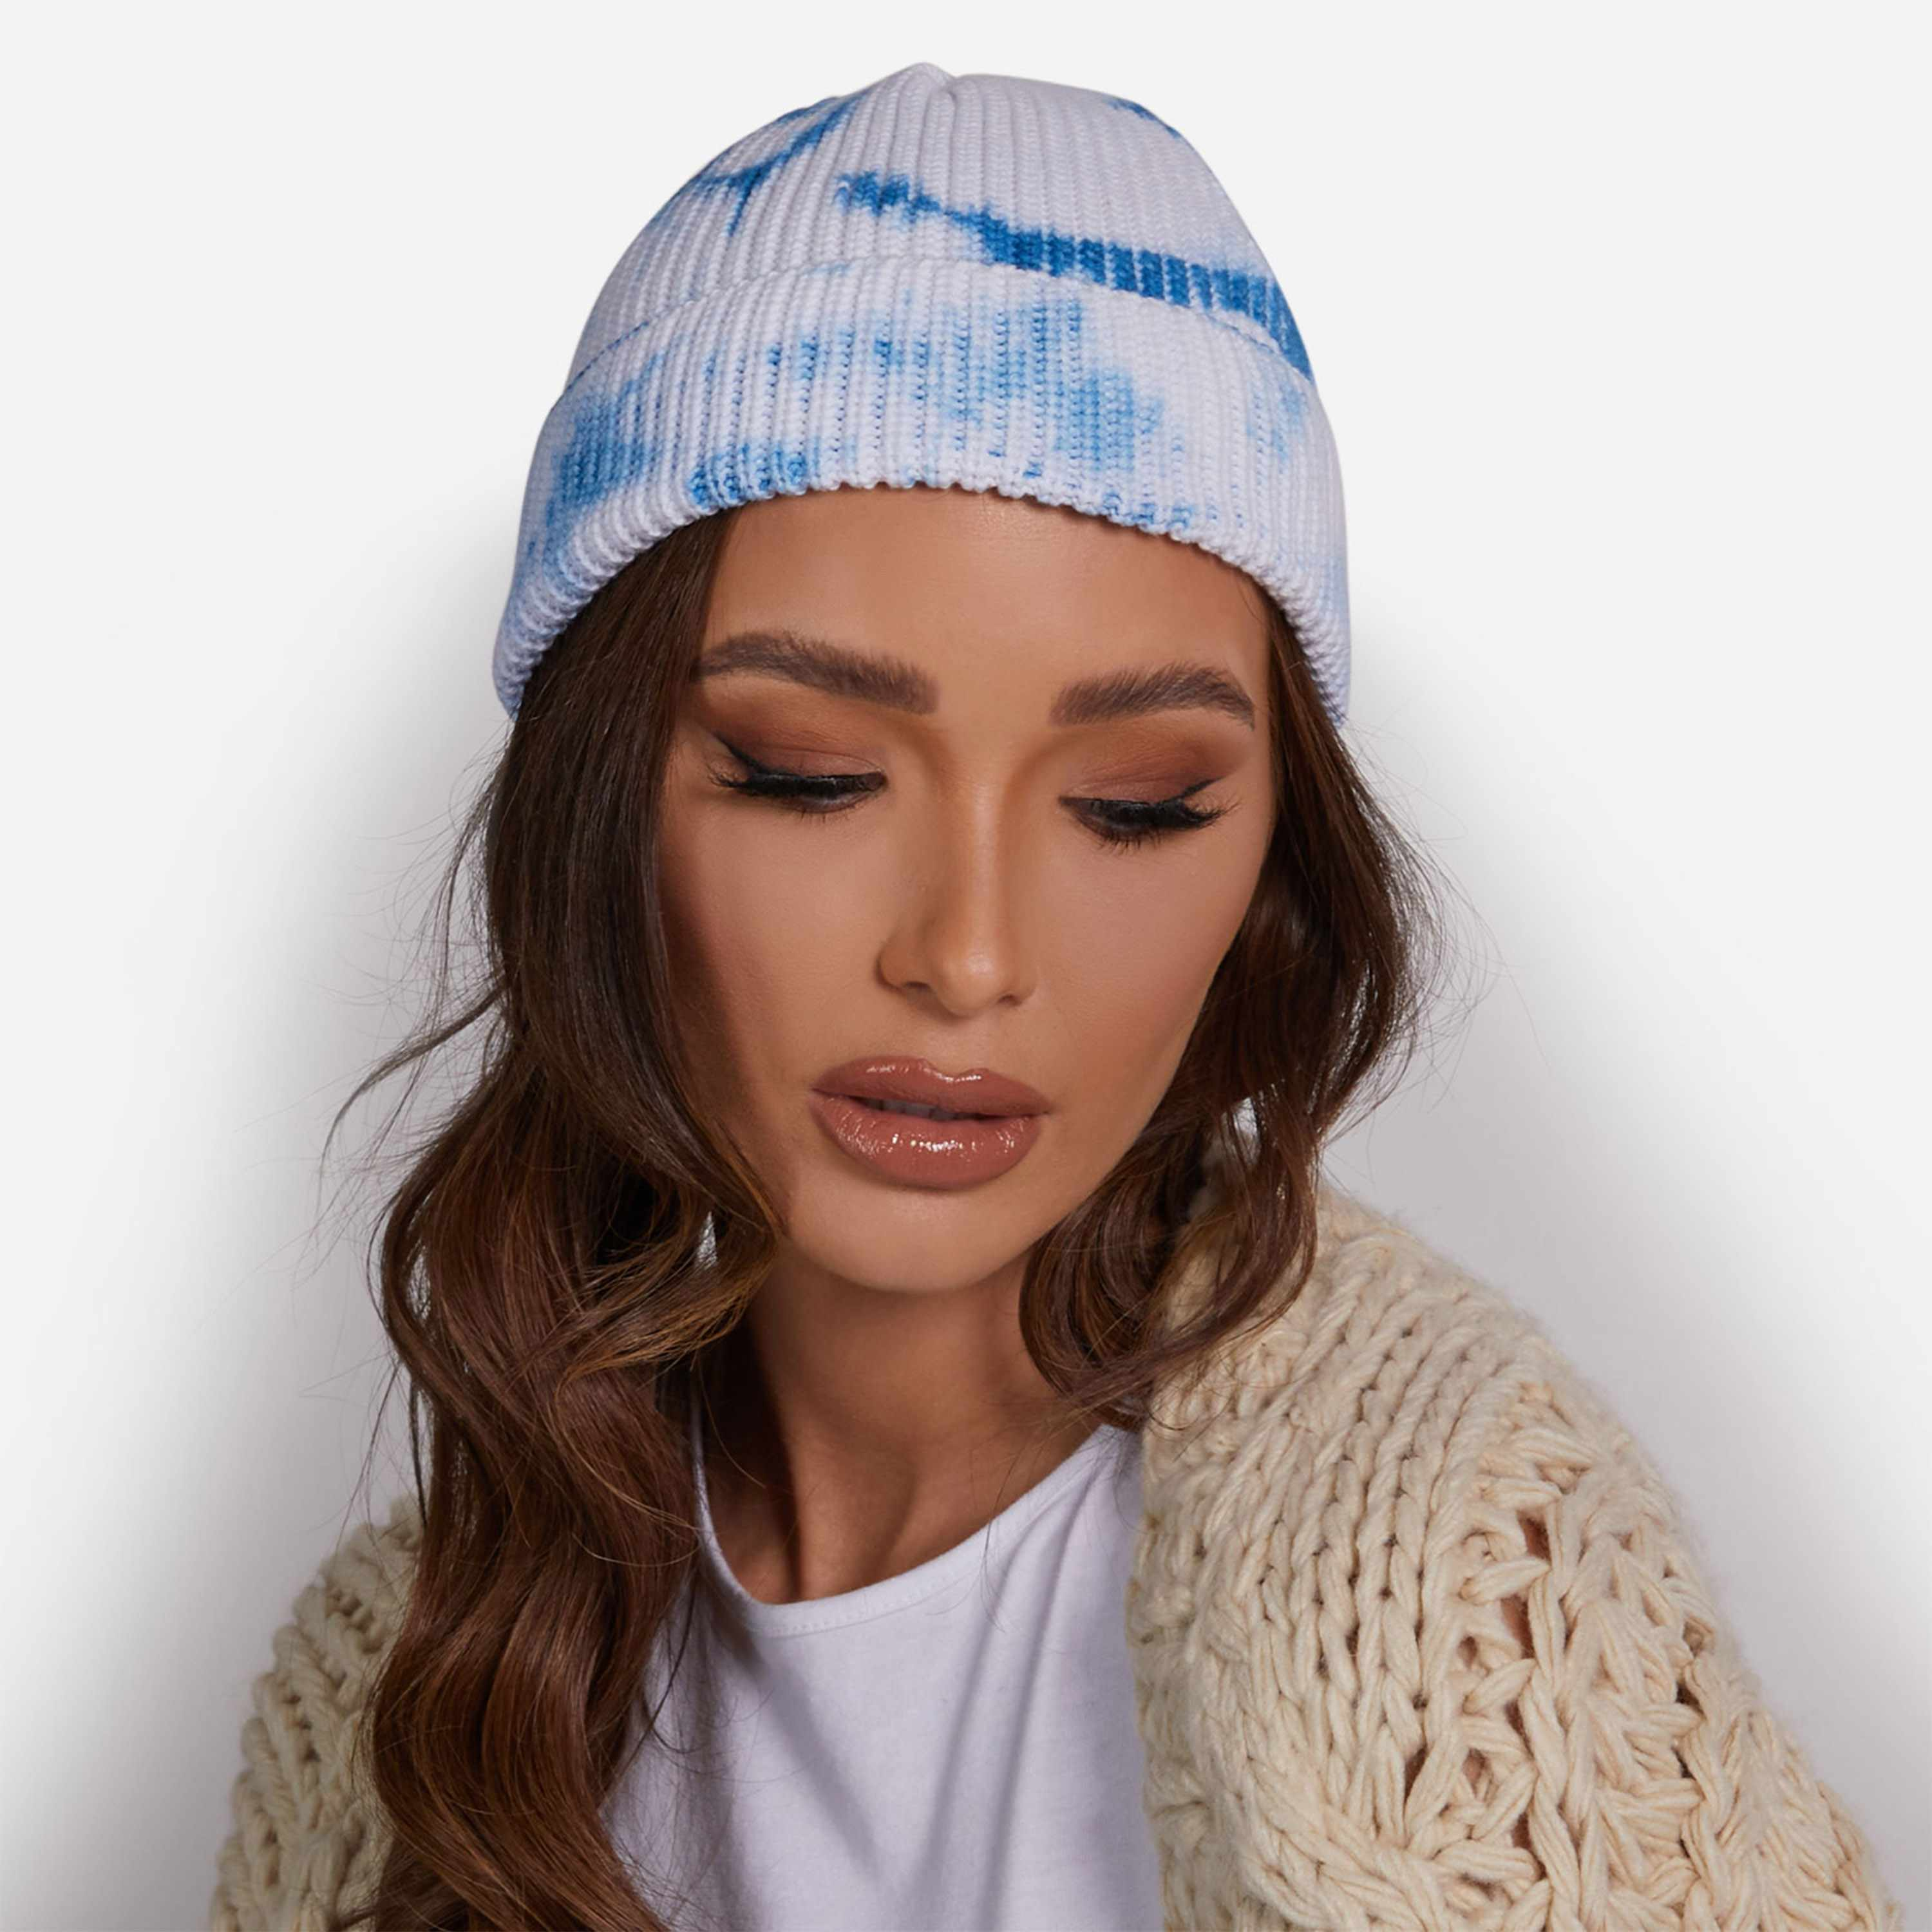 Fisherman Beanie Hat In Blue Tie Dye Knit